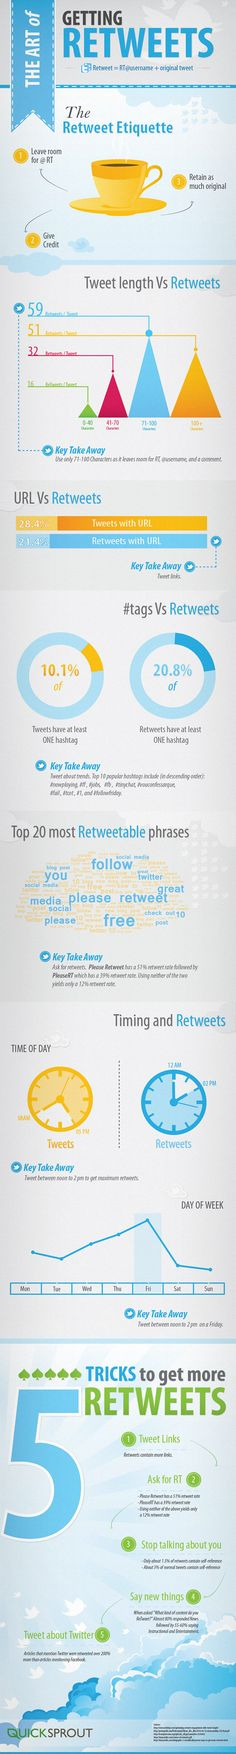 The Art Of Getting Retweets - #Twitter